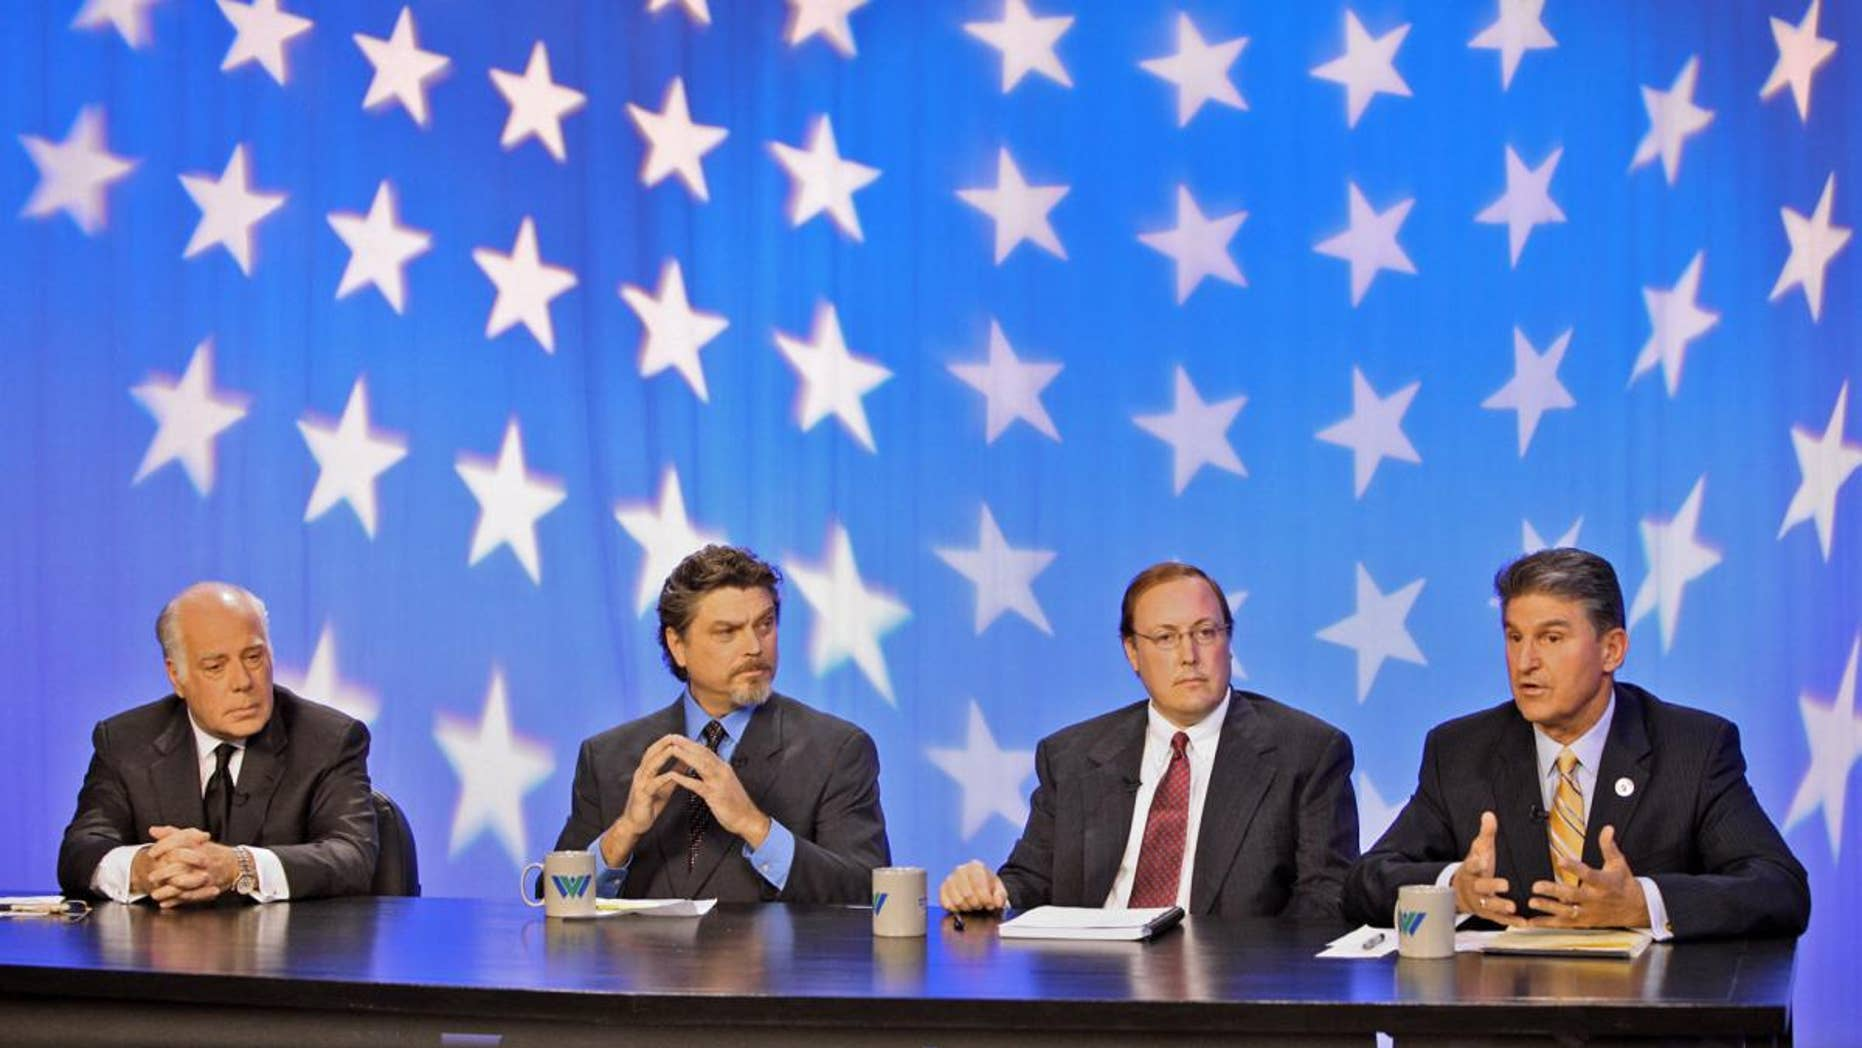 West Virginia senatorial candidates Republican John Raese, Mountain Party candidate Jesse Johnson, and Constitutional Party candidate Jeff Becker, in Morgantown, W.Va. on Monday, Oct. 18, 2010/AP Photo